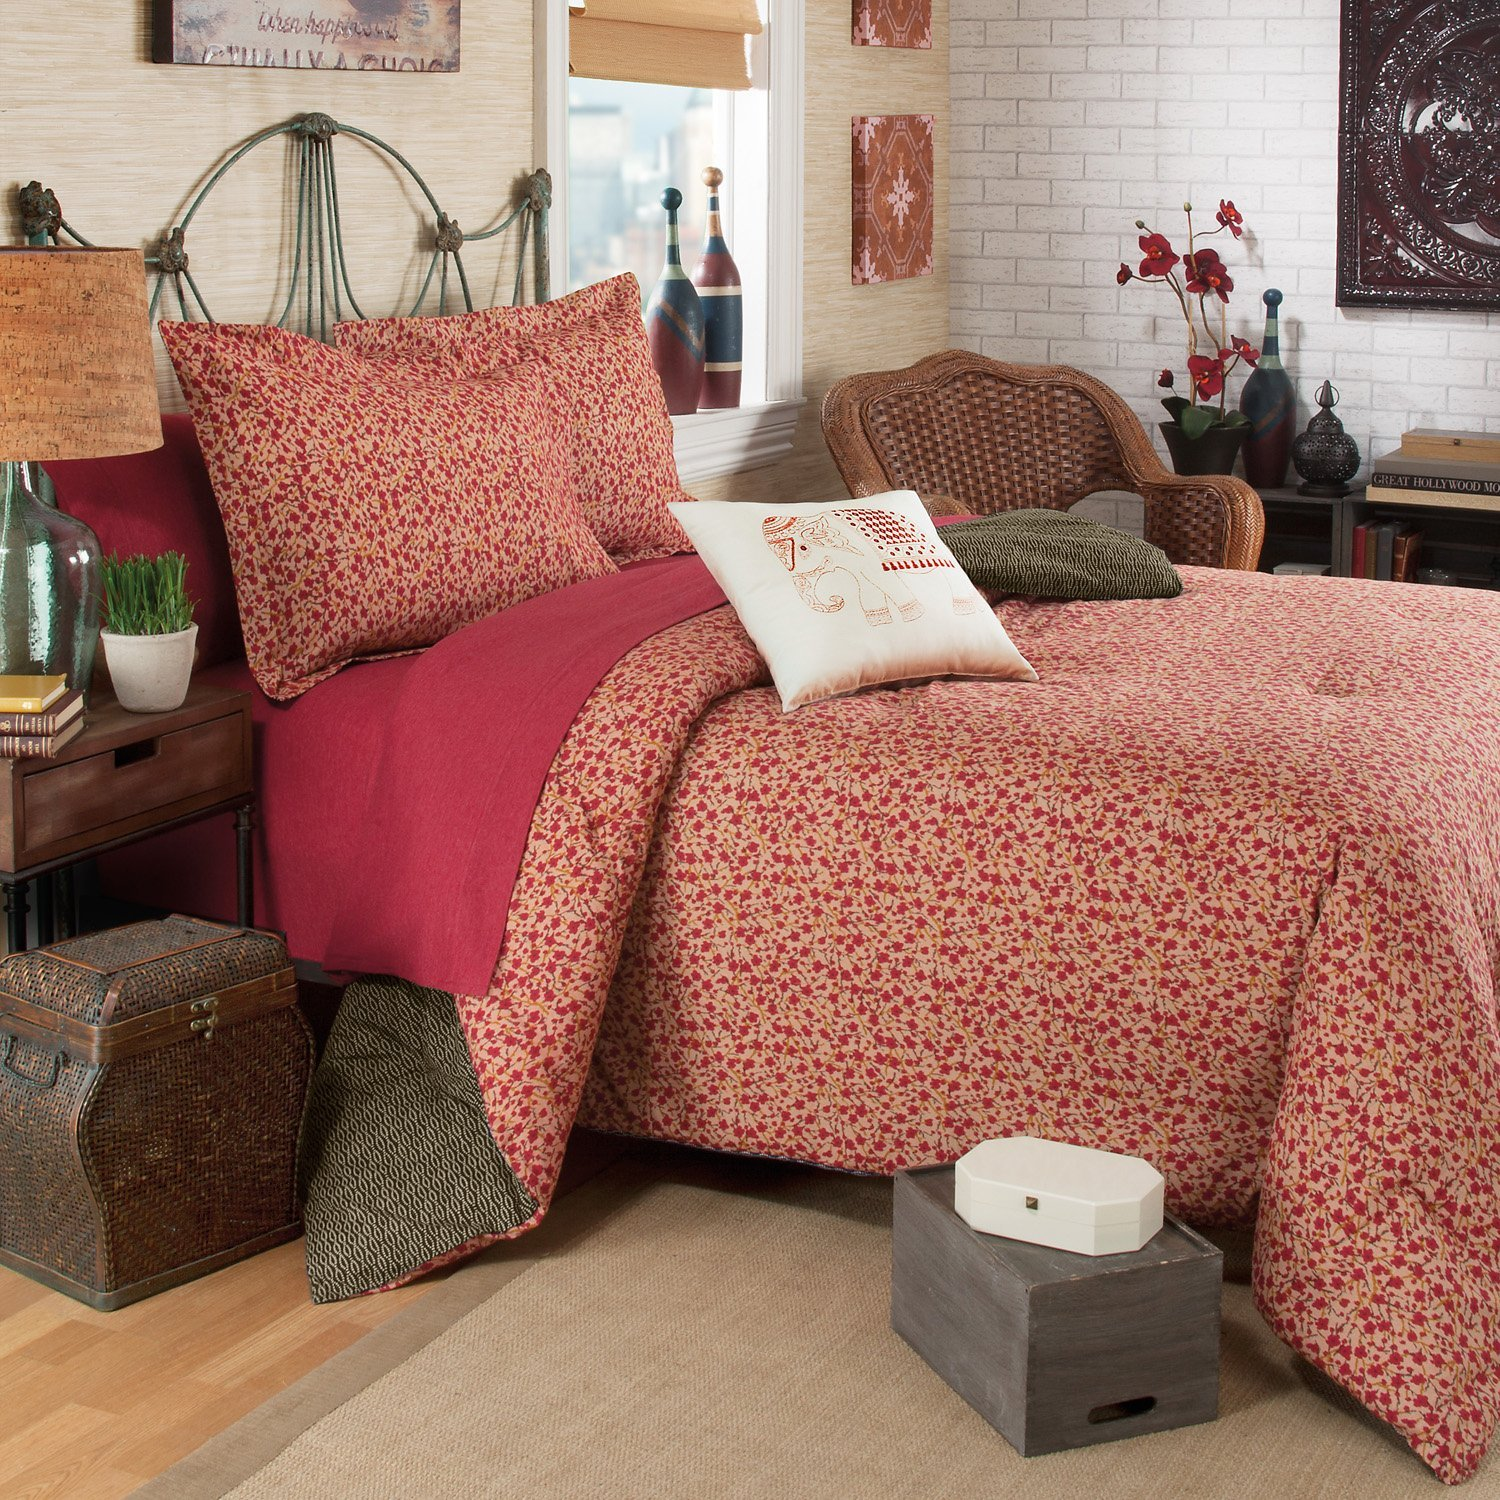 Cheap Red King Comforter Find Red King Comforter Deals On